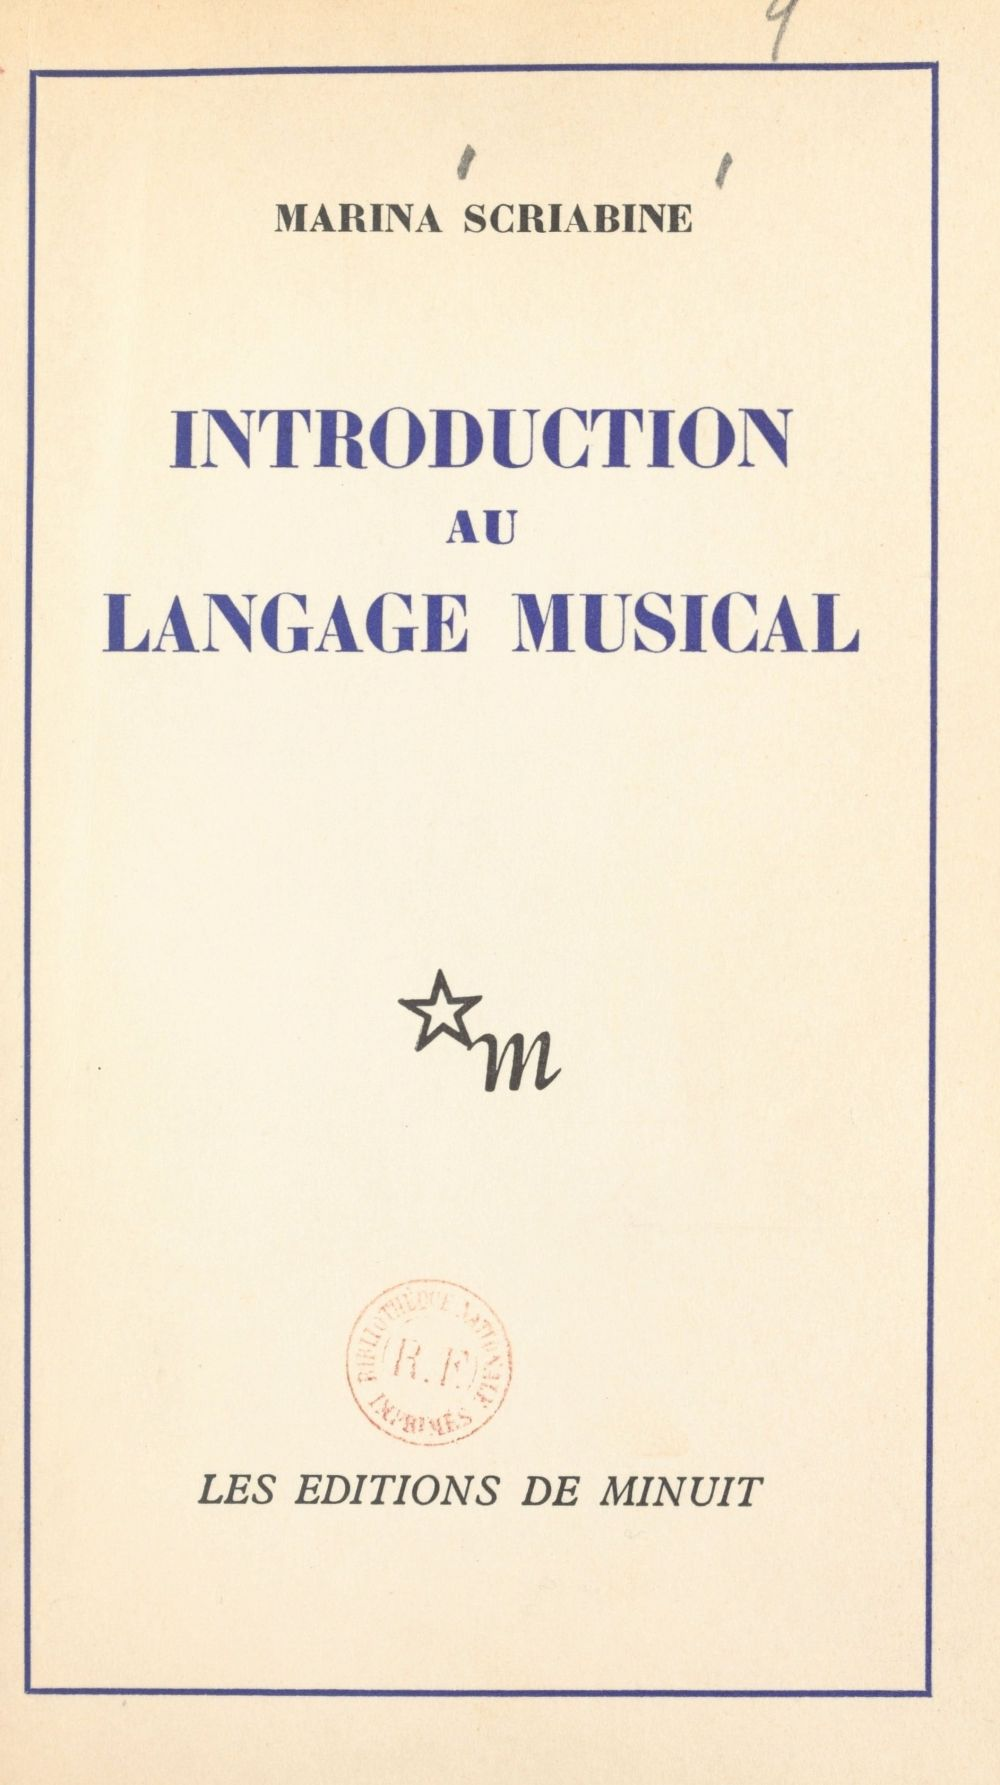 Introduction au langage musical